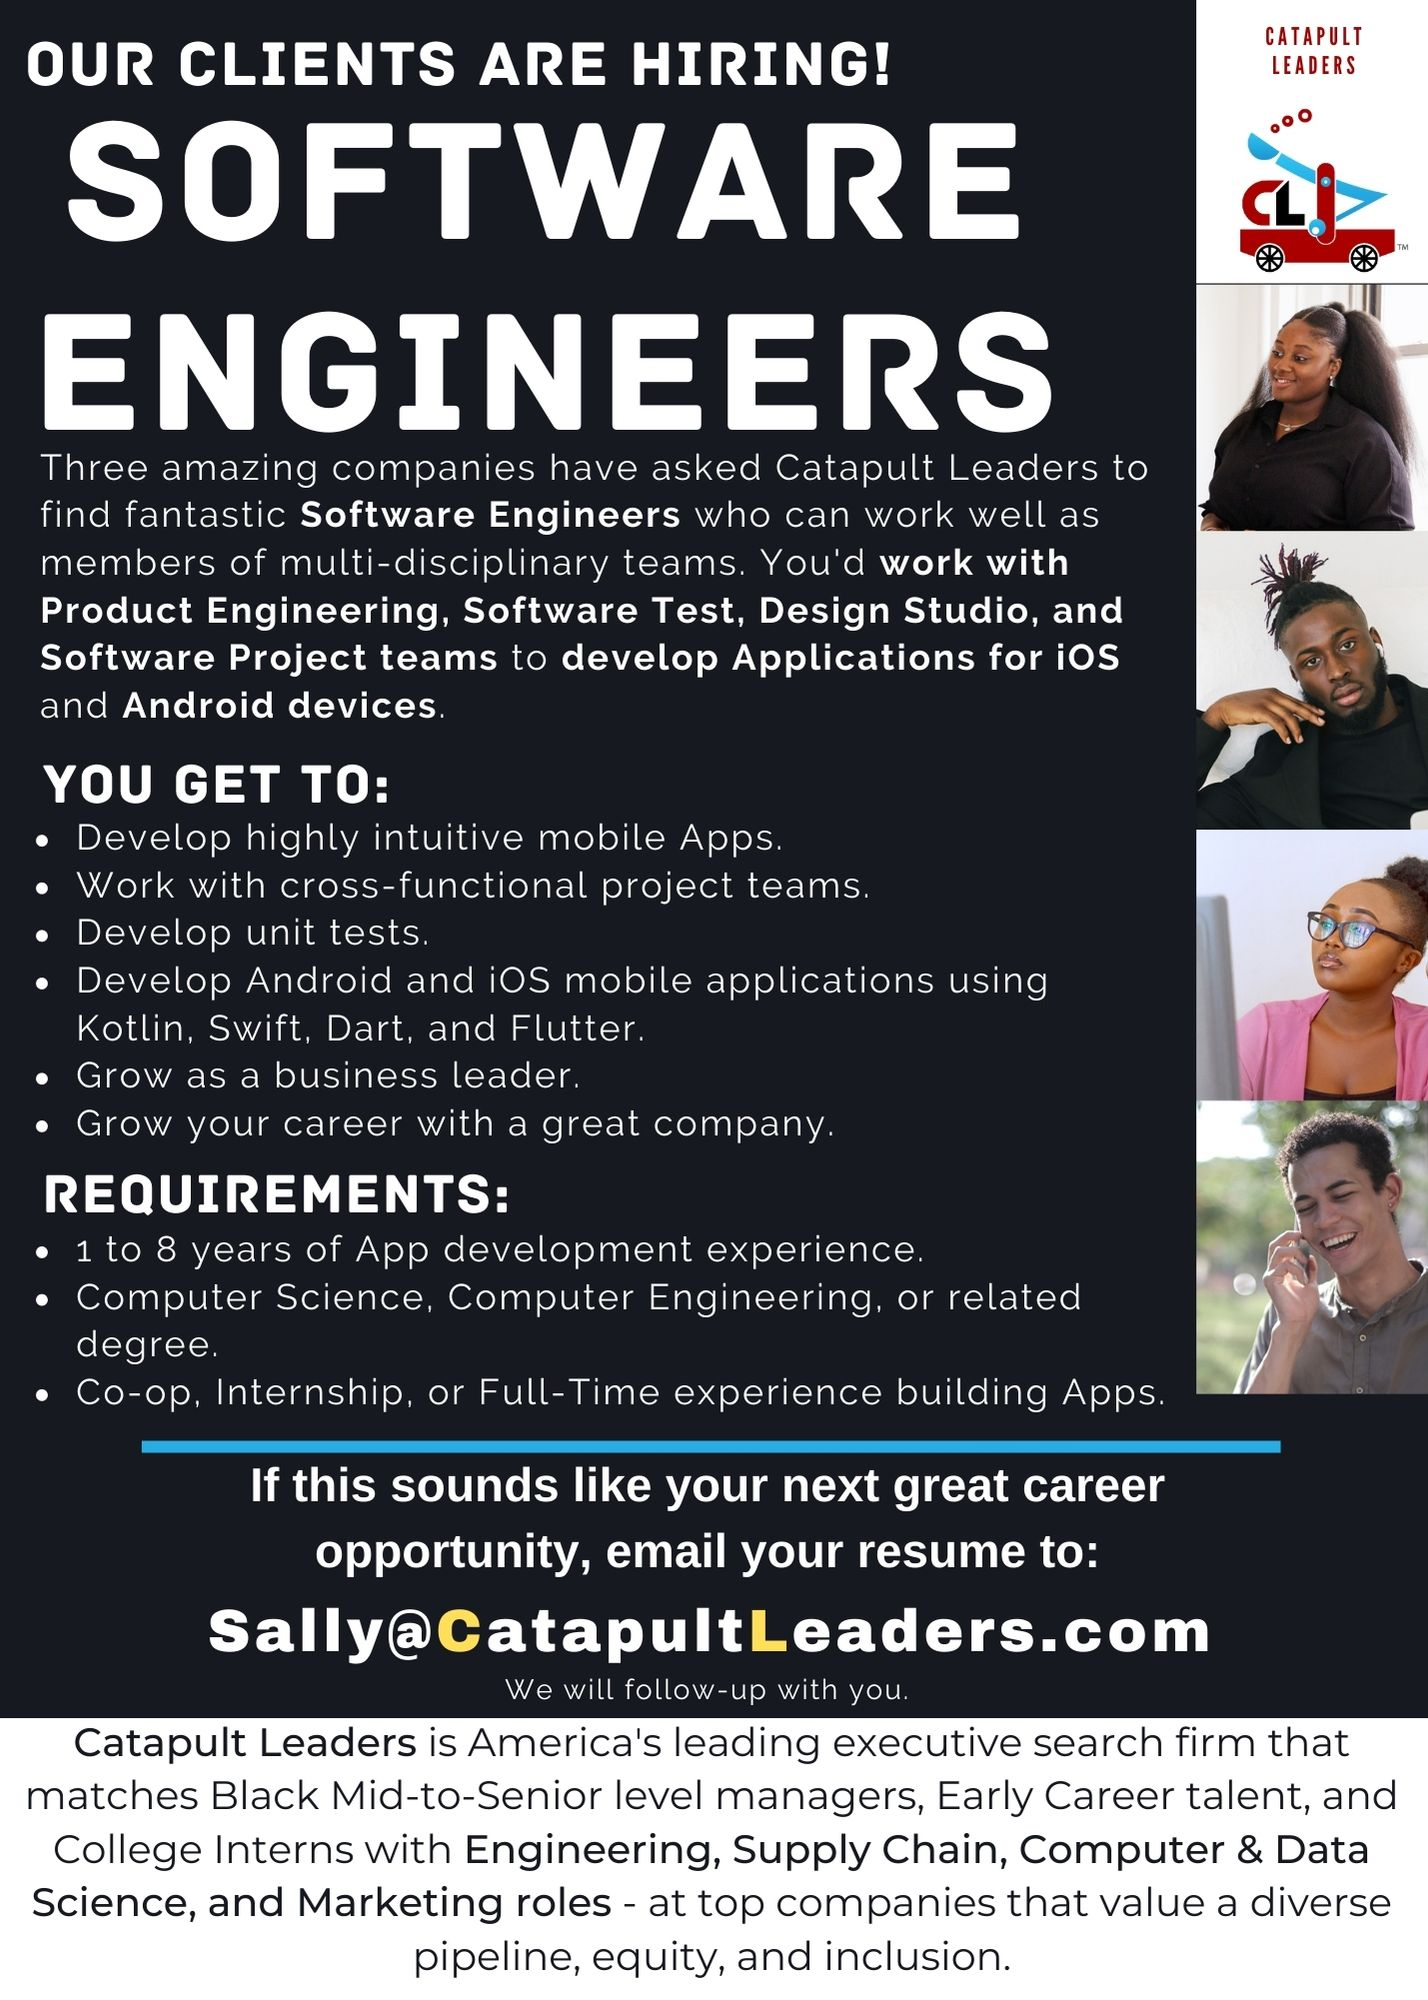 Software Engineers Apps Ad - Catapult Leaders